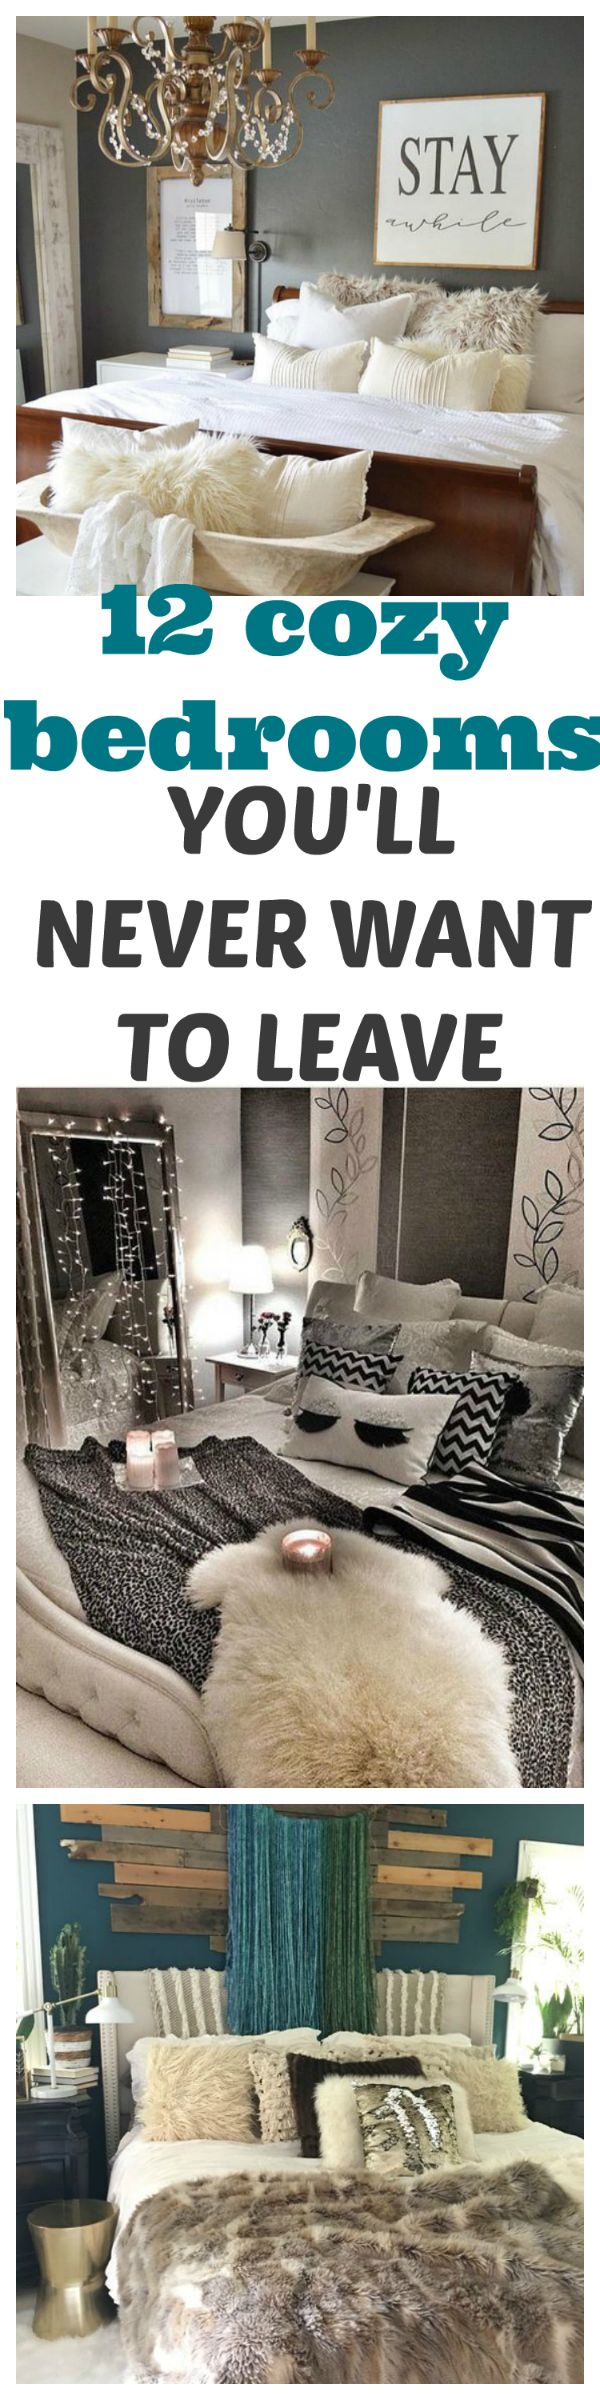 12 of the coziest bedrooms you'll never want to leave. Learn to decorate your small bedroom or master bedroom with decorating tips and ideas with inexpensive decorations like throw blankets, faux fur, lights, wall hangings and more.    #boho #bohodecorati